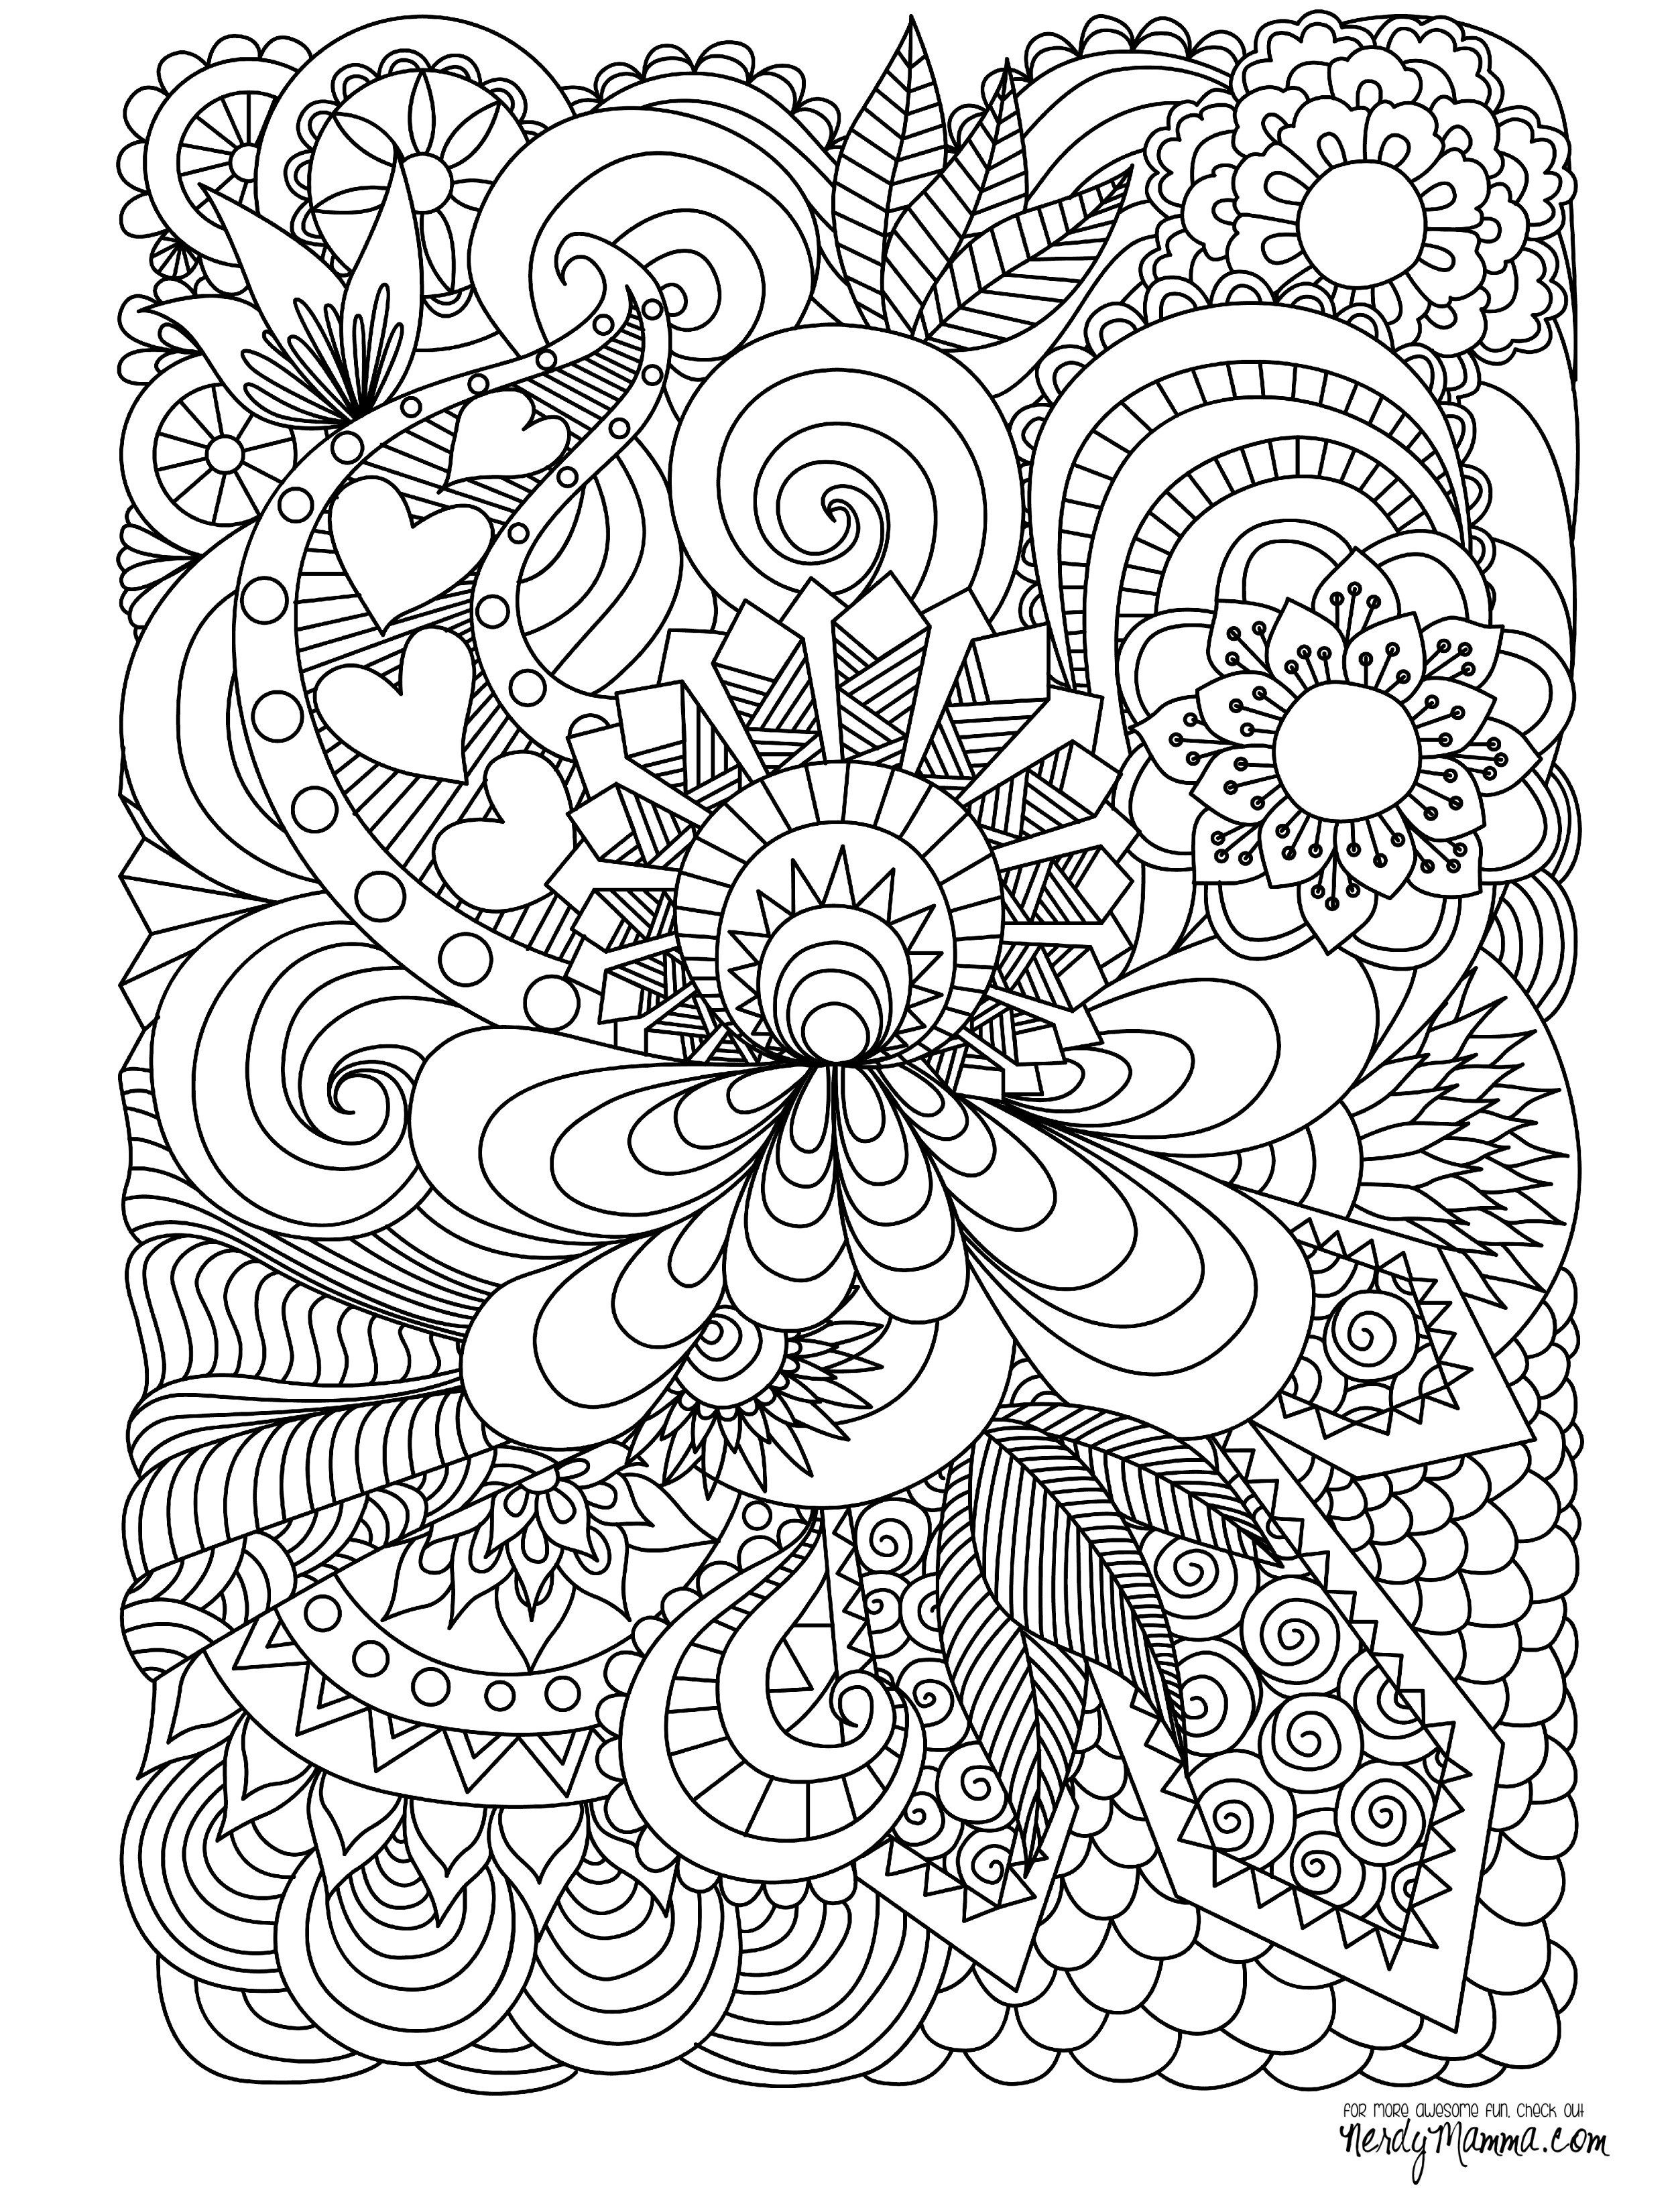 11 Free Printable Adult Coloring Pages Adult coloring